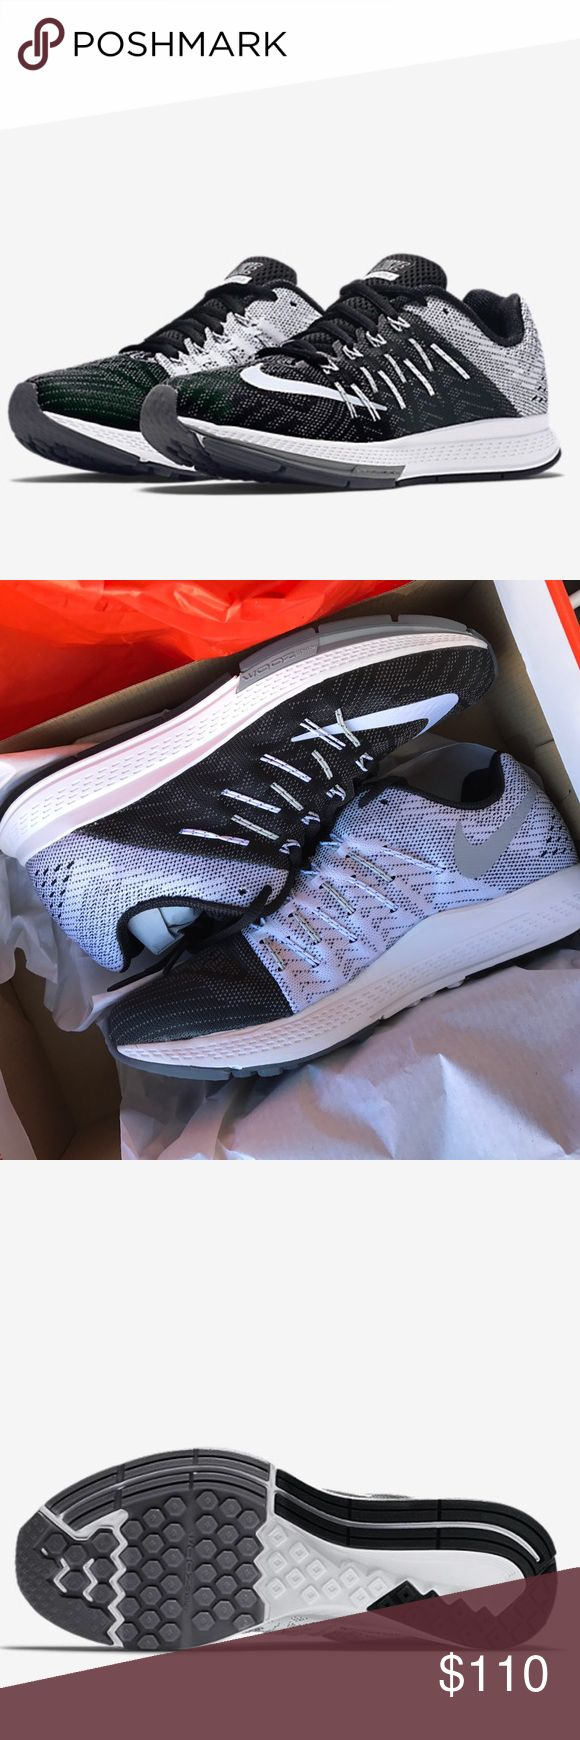 NWB 👣 WOMENS NIKE ZOOM ELITE New never worn NIKE ZOOM ELITE women's. This shoe is beyond perfect for fashion AND function. In the hard to find Oreo color way 😍👣. This item ships in its original NIKE BOX.   NO OFFERS. THESE ARE FULL RETAIL AT ALL STORES INCLUDING FOOTLOCKER...YOU DO NOT PAY SALES TAX ON POSH. 🤑 Bundle to save 15% ❤️   Ships same or next day from my smoke free home.  PRICE IS FIRM ⚡️100% authentic Nike product purchased directly from NIKE Nike Shoes Athletic Shoes